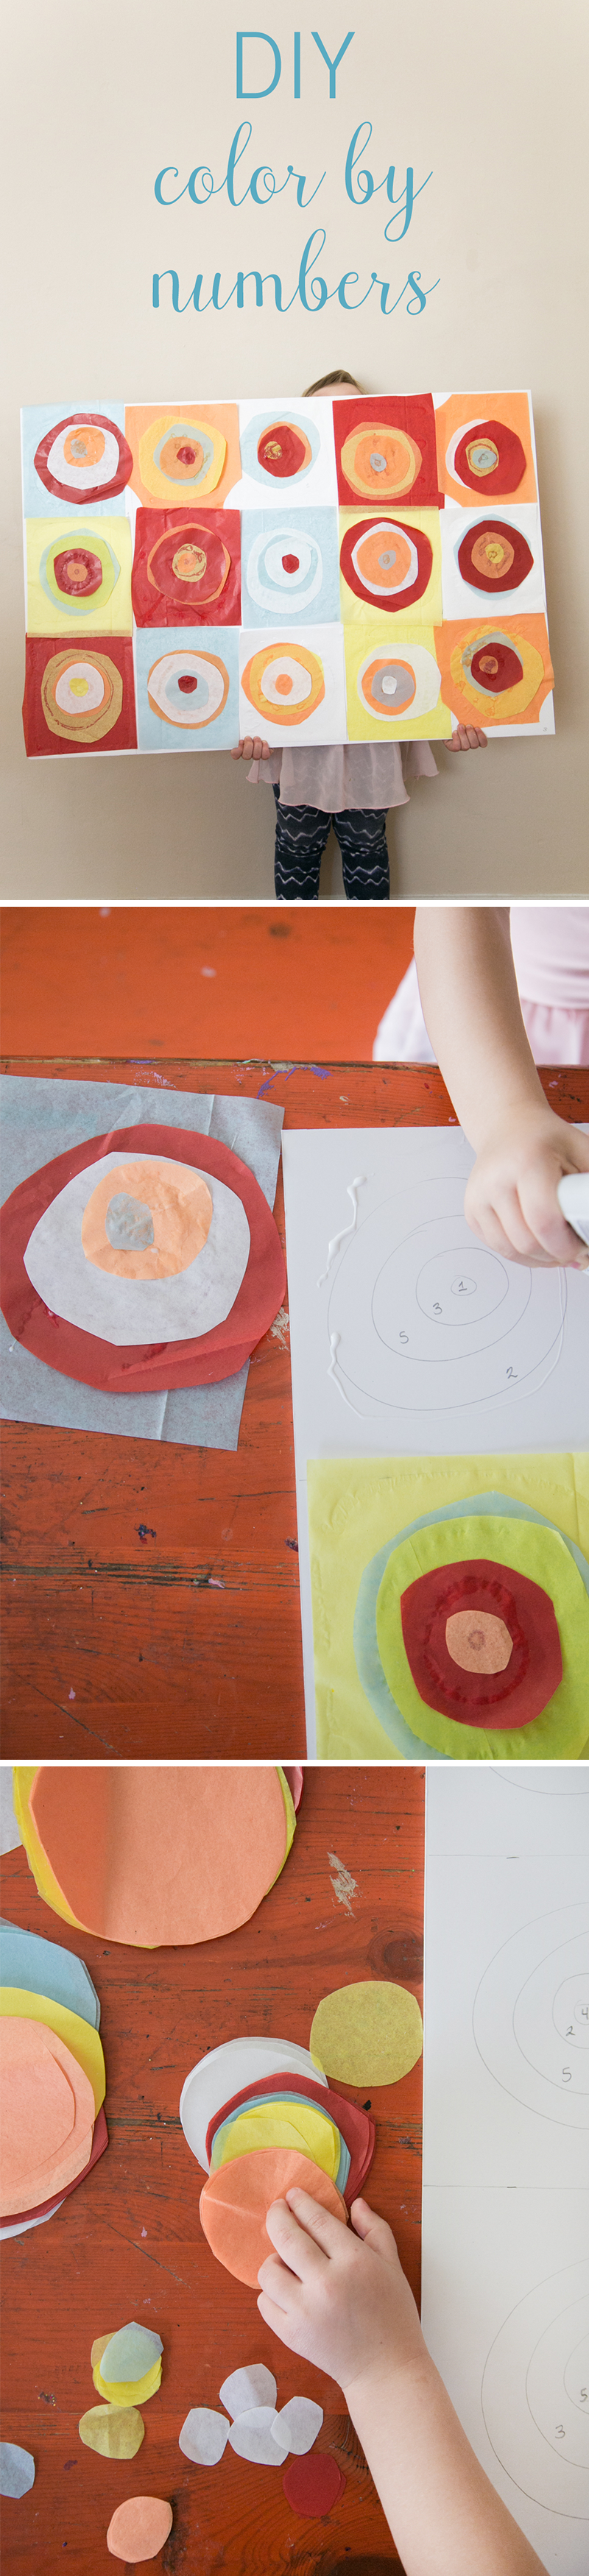 How to Create Color by Numbers for Your Toddler | Craft, Fun diy ...